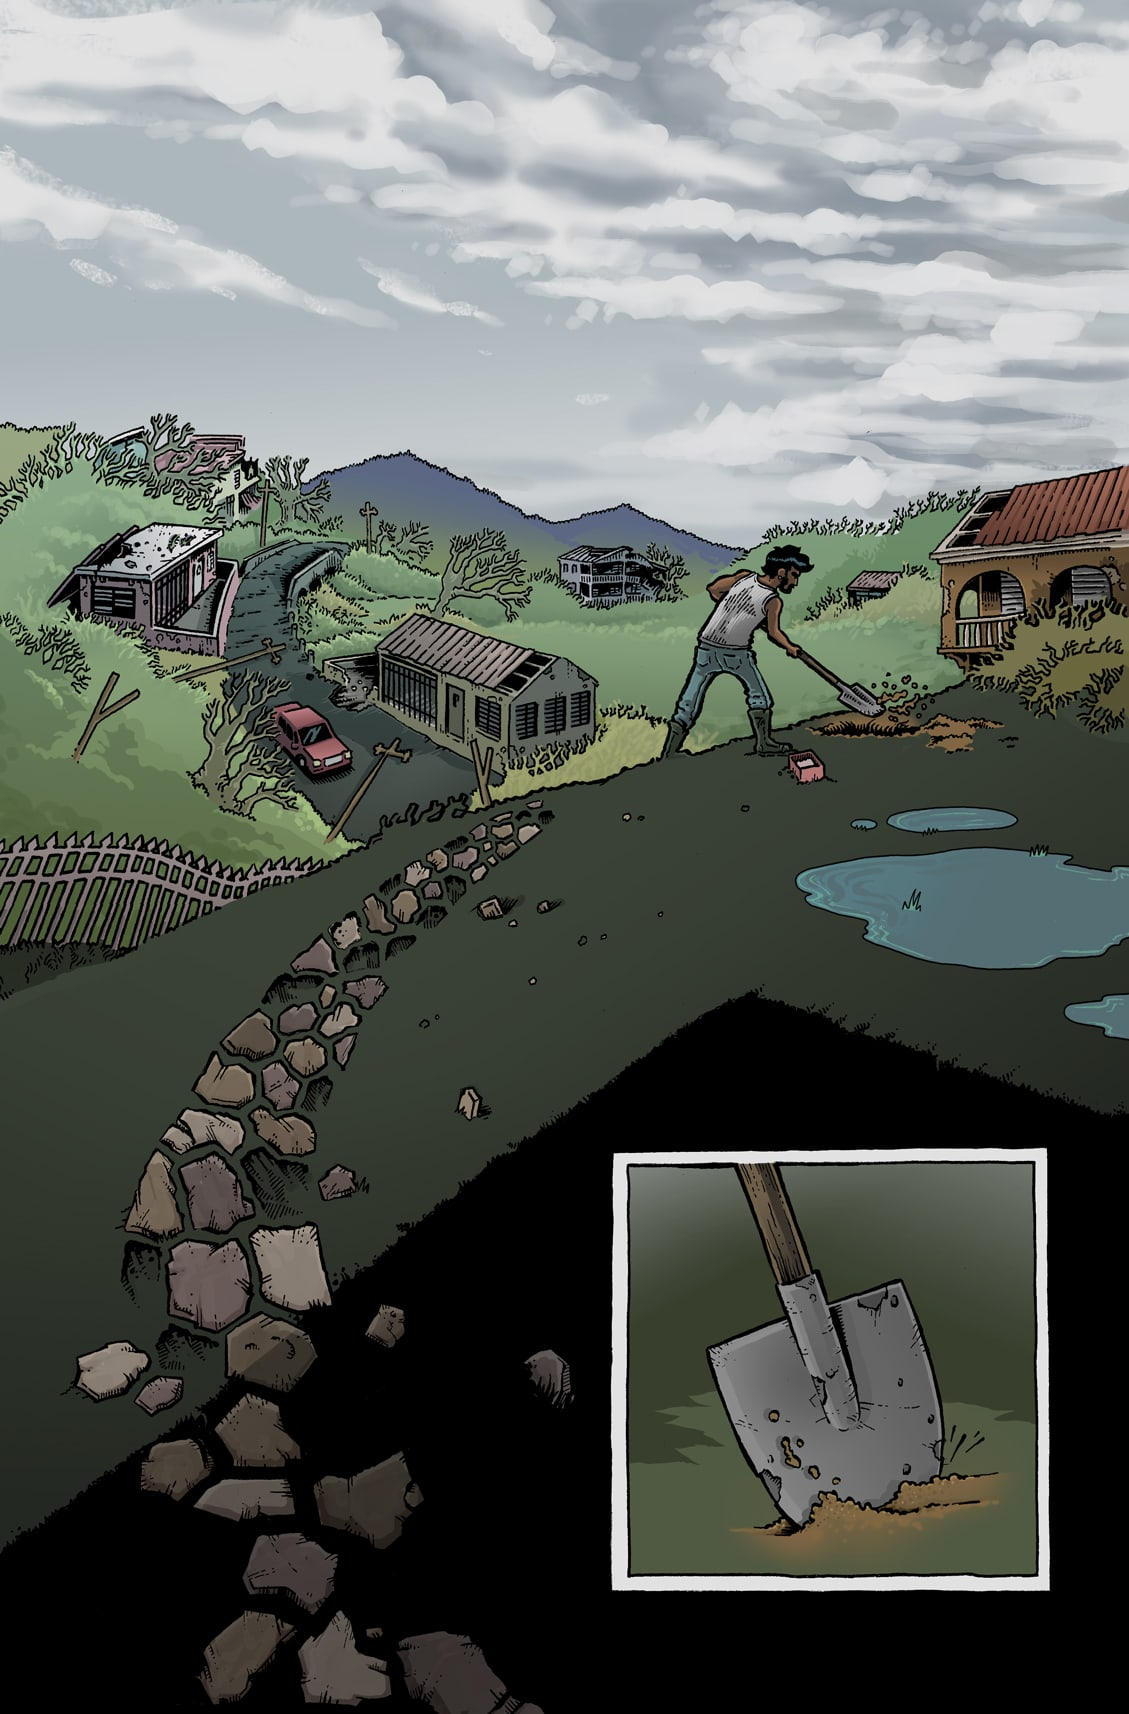 """El Pitirre"" short story for the Ricanstruction Graphic Novel"